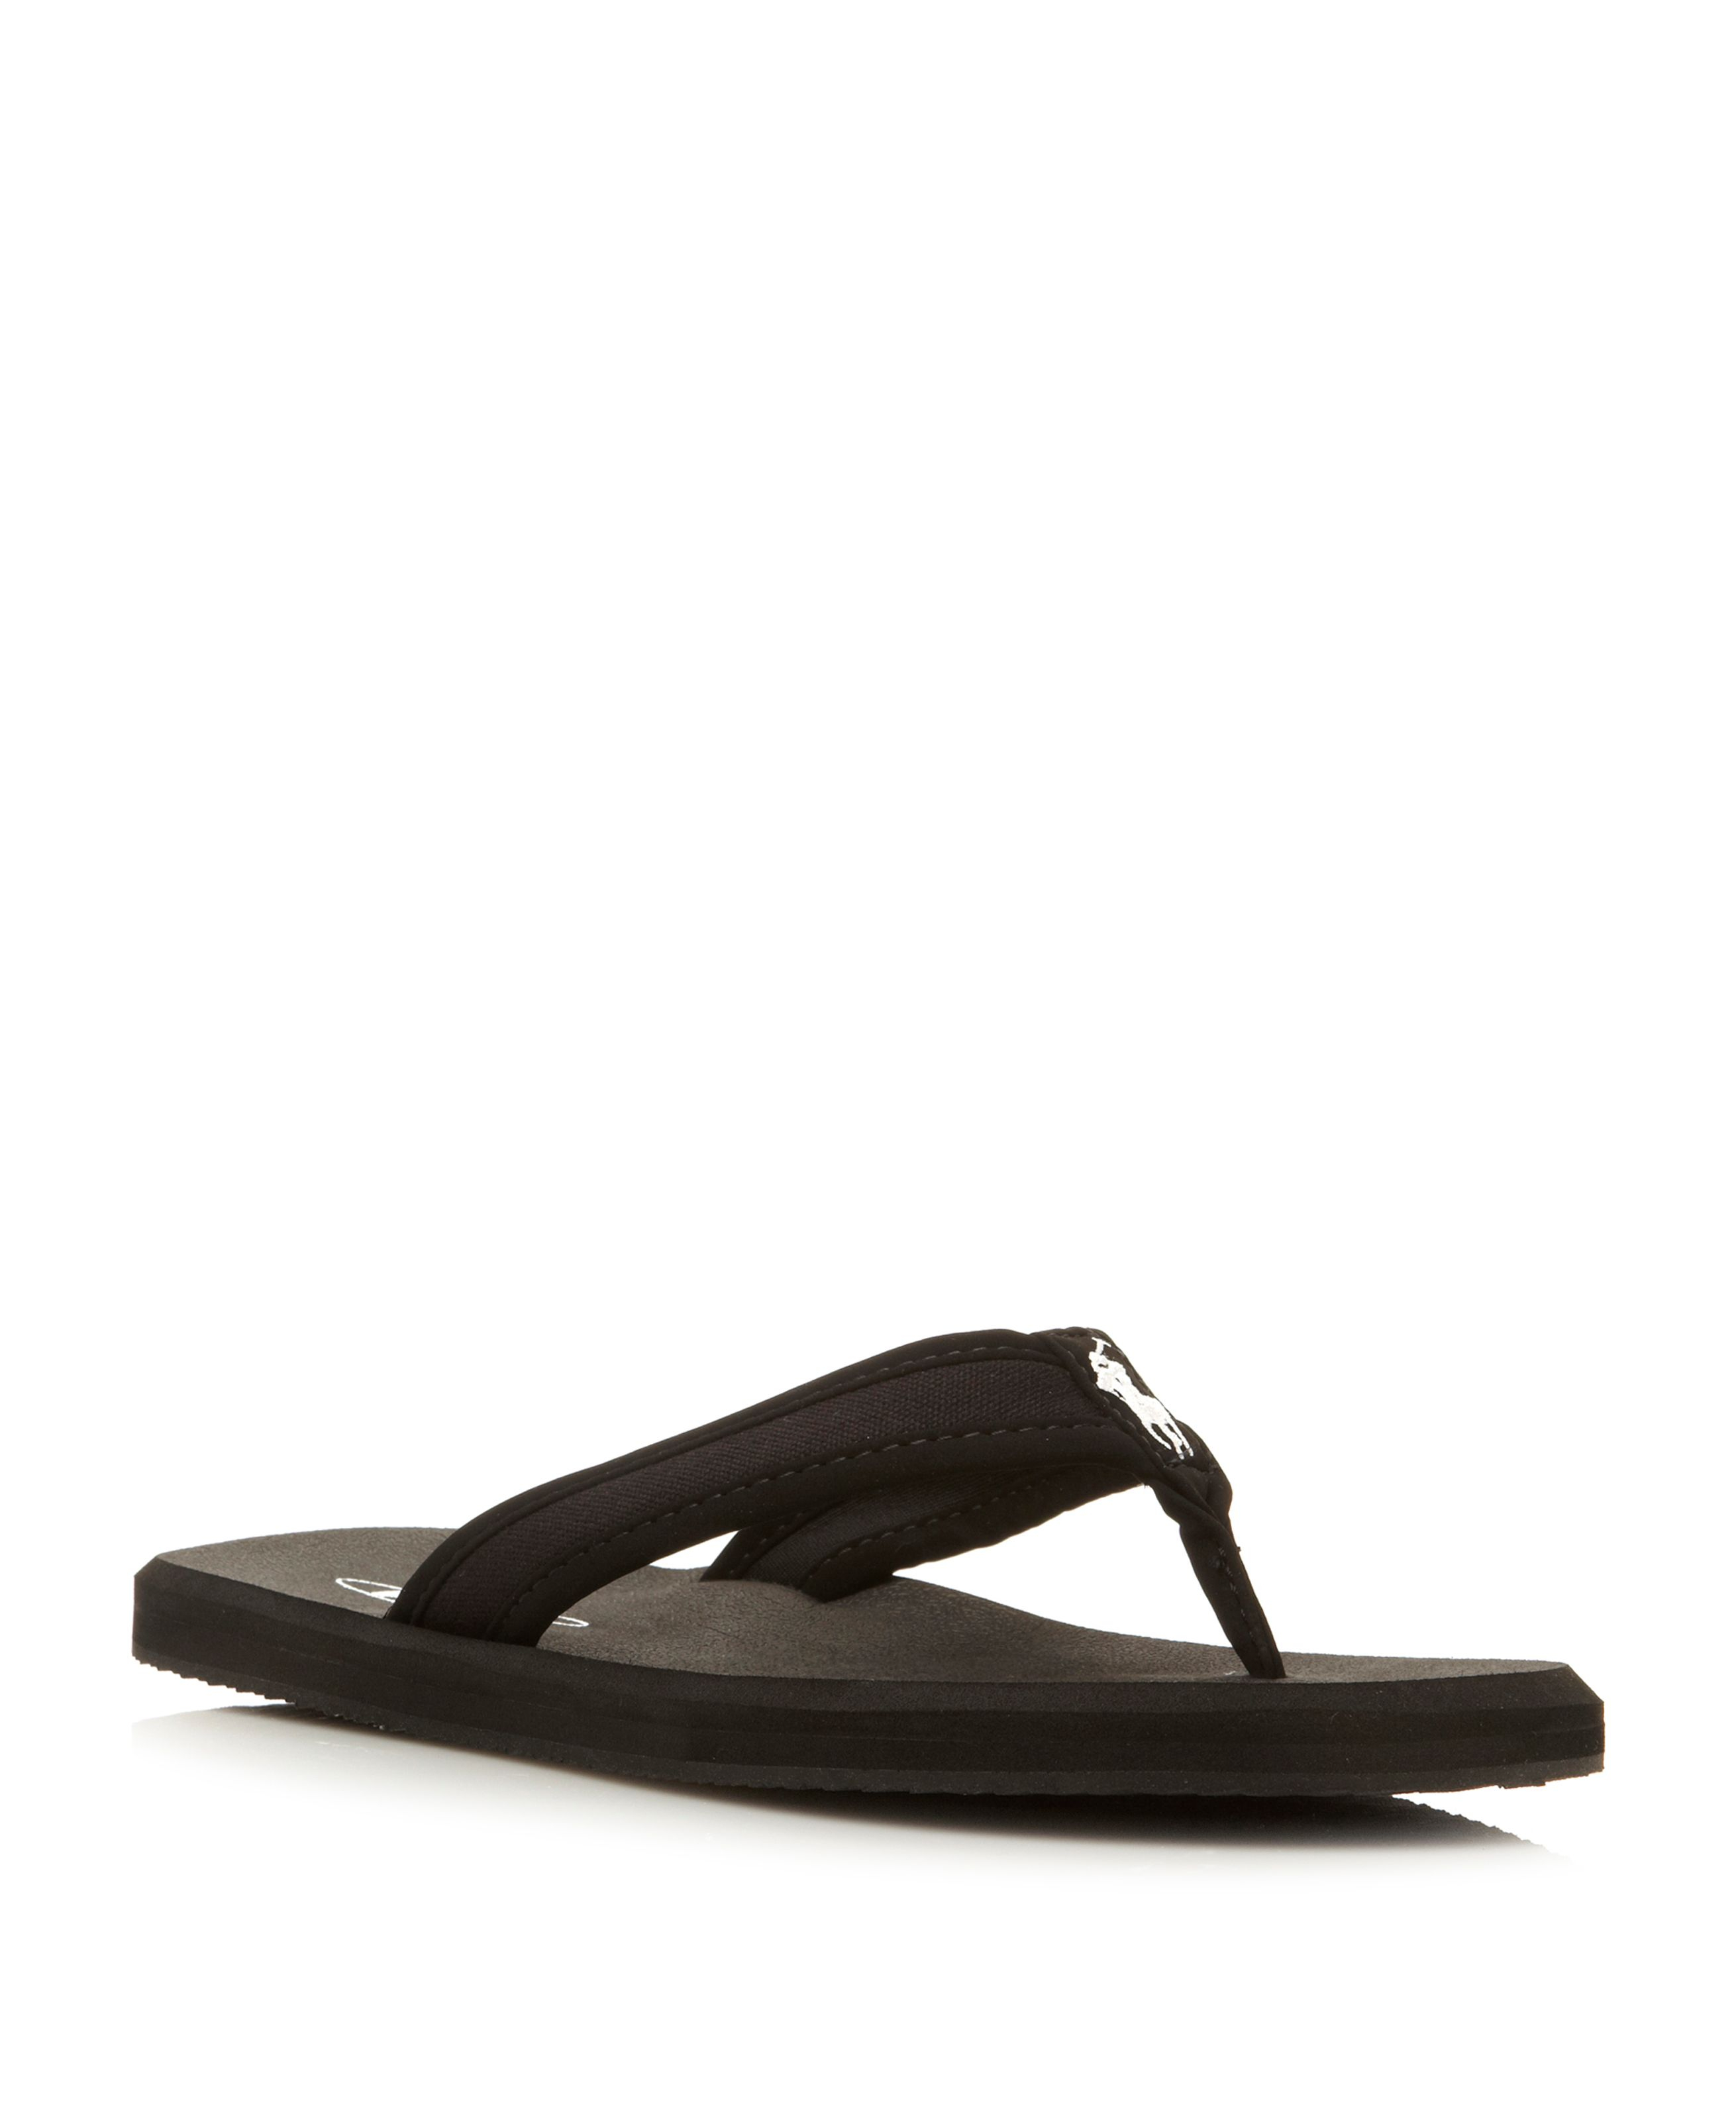 60f78ae2a7c71 ... coupon for lyst polo ralph lauren almer ii canvas toe post sandals in  blue b766a fc2e3